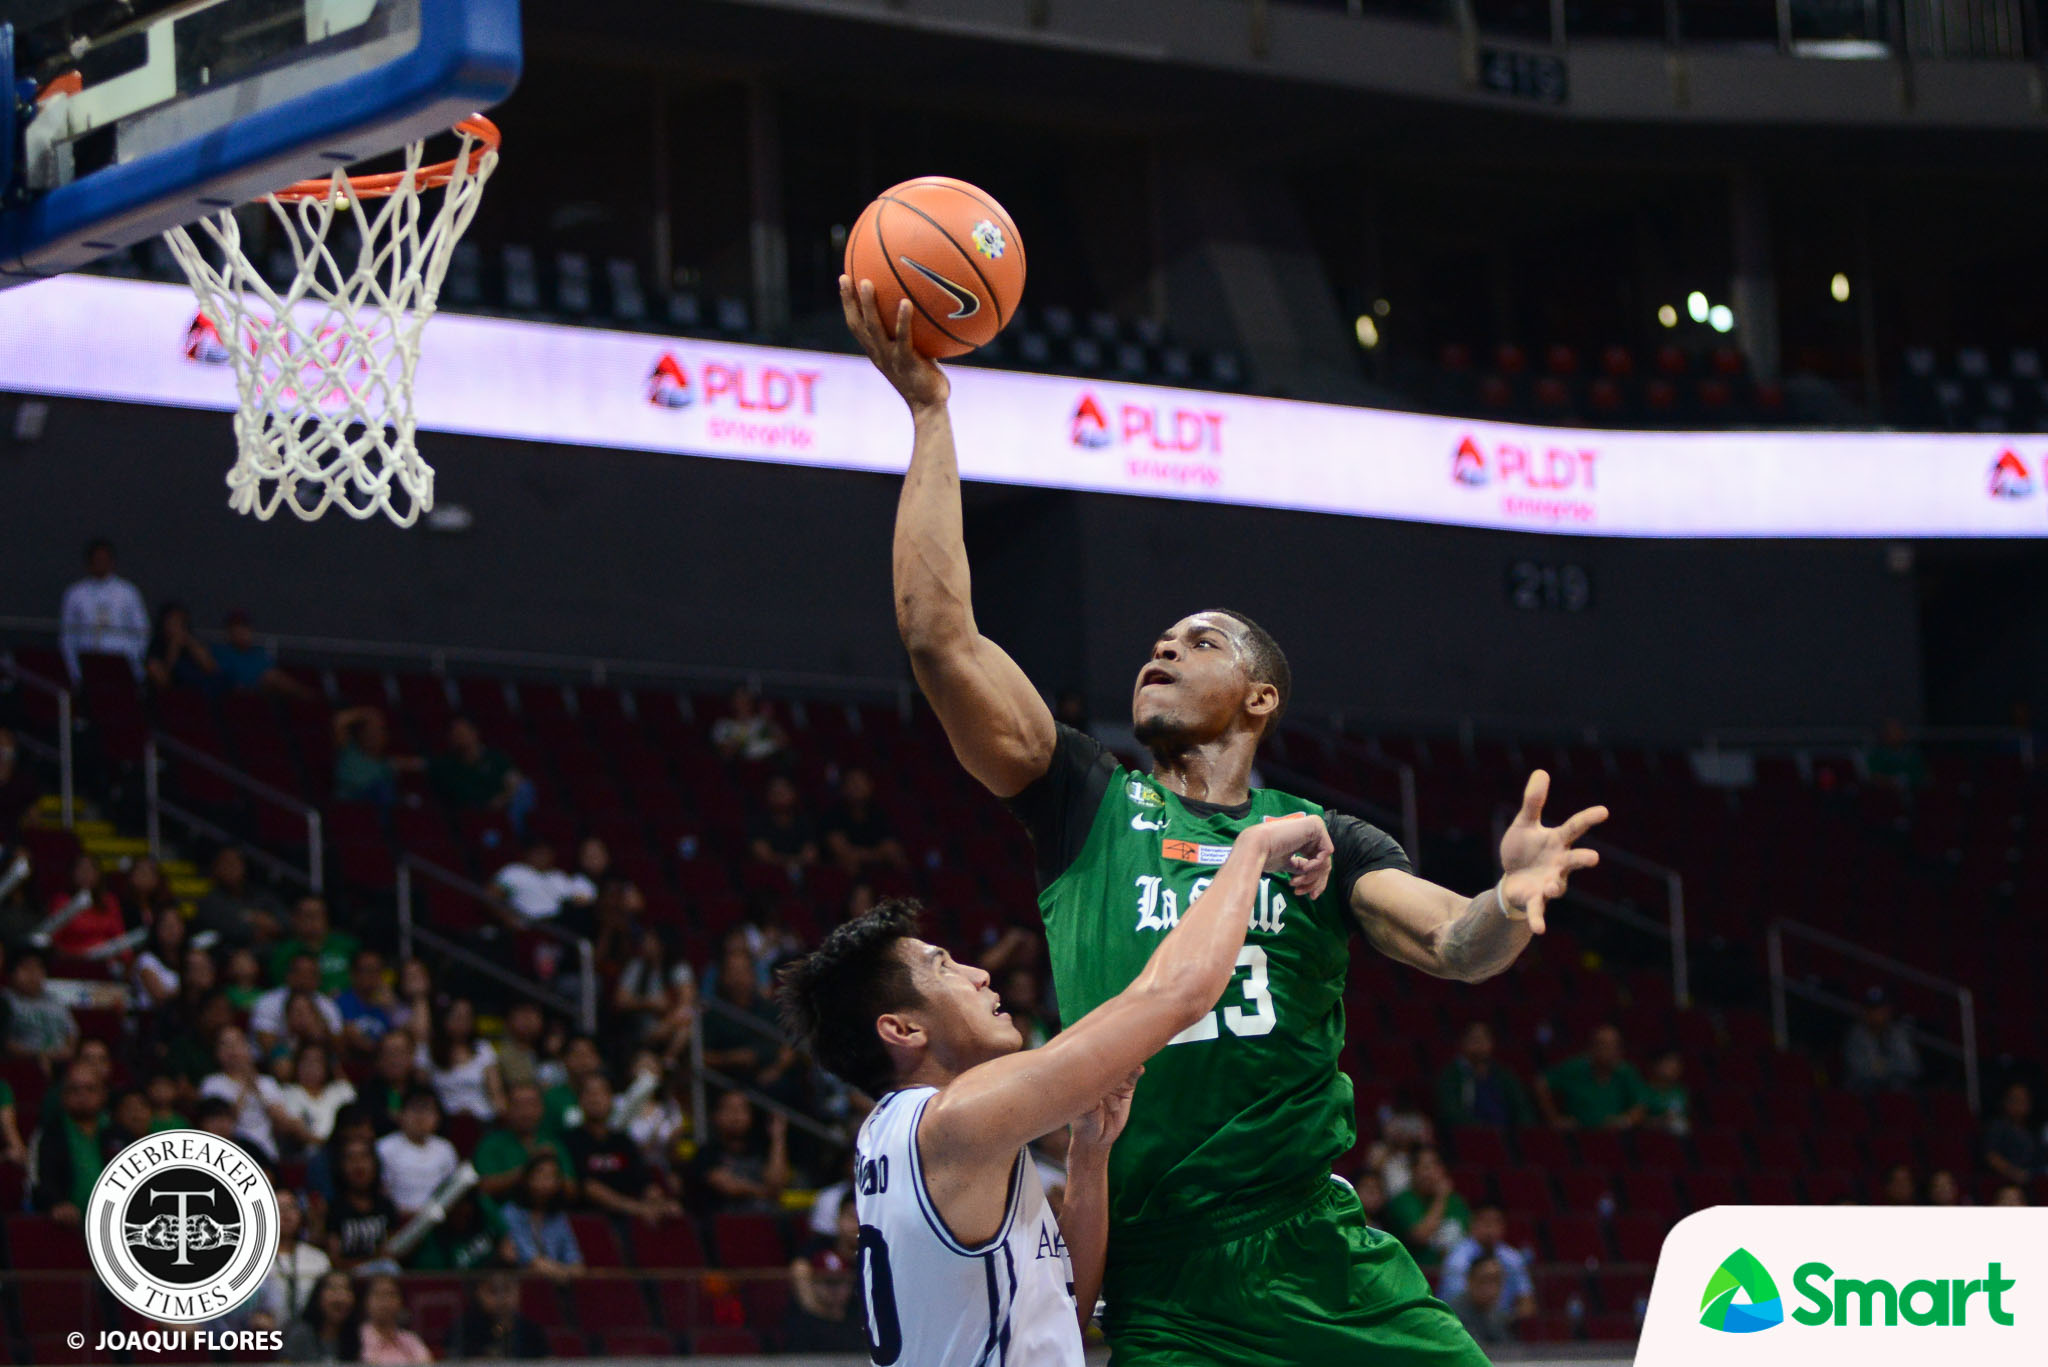 Philippine Sports News - Tiebreaker Times Ben Mbala drops 32 in return, helps La Salle fend off Adamson AdU Basketball DLSU News UAAP  UAAP Season 80 Men's Basketball UAAP Season 80 Santi Santillan Robbie Manalang Papi Sarr Jerrick Ahanmisi Franz Pumaren DLSU Men's Basketball Ben Mbala Aldin Ayo Adamson Men's Basketball